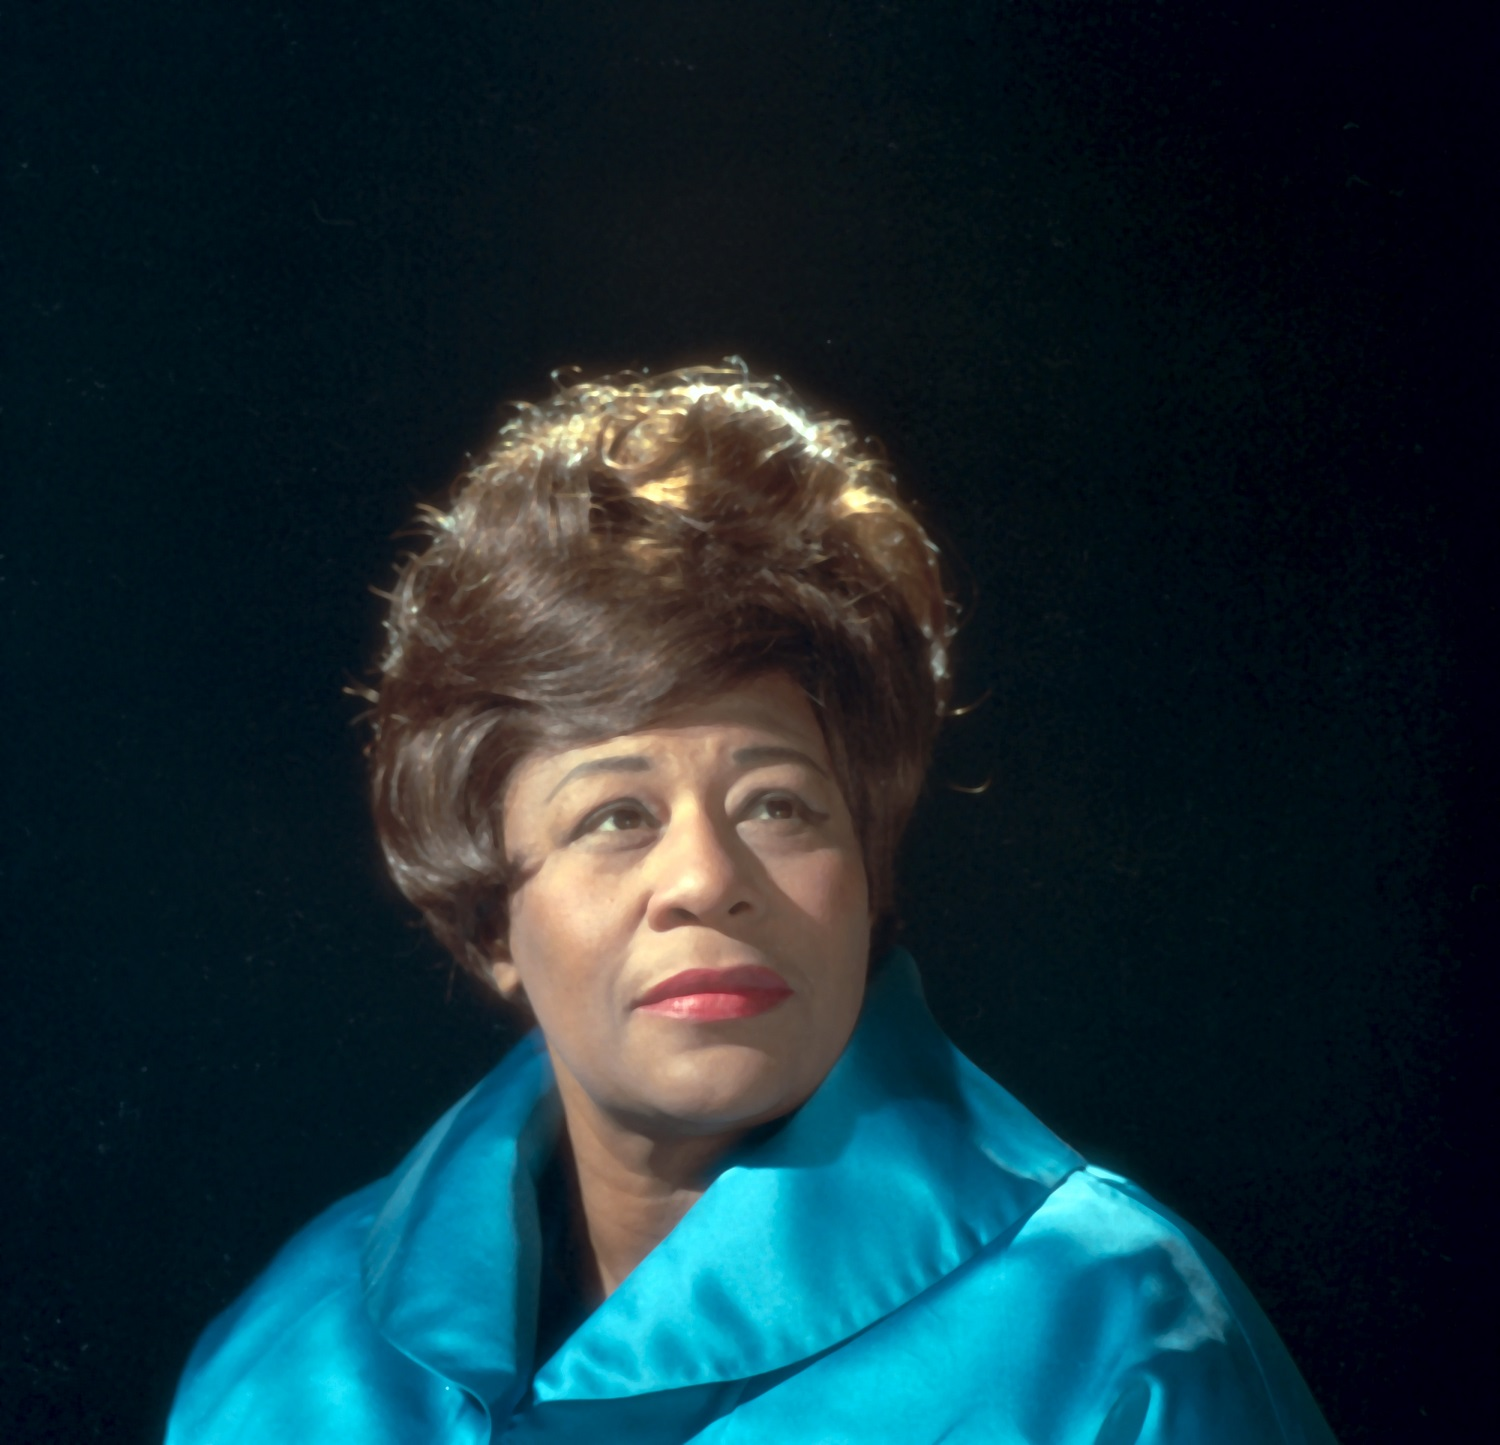 Ella Fitzgerald Signs as Greenlight's Newest Icon